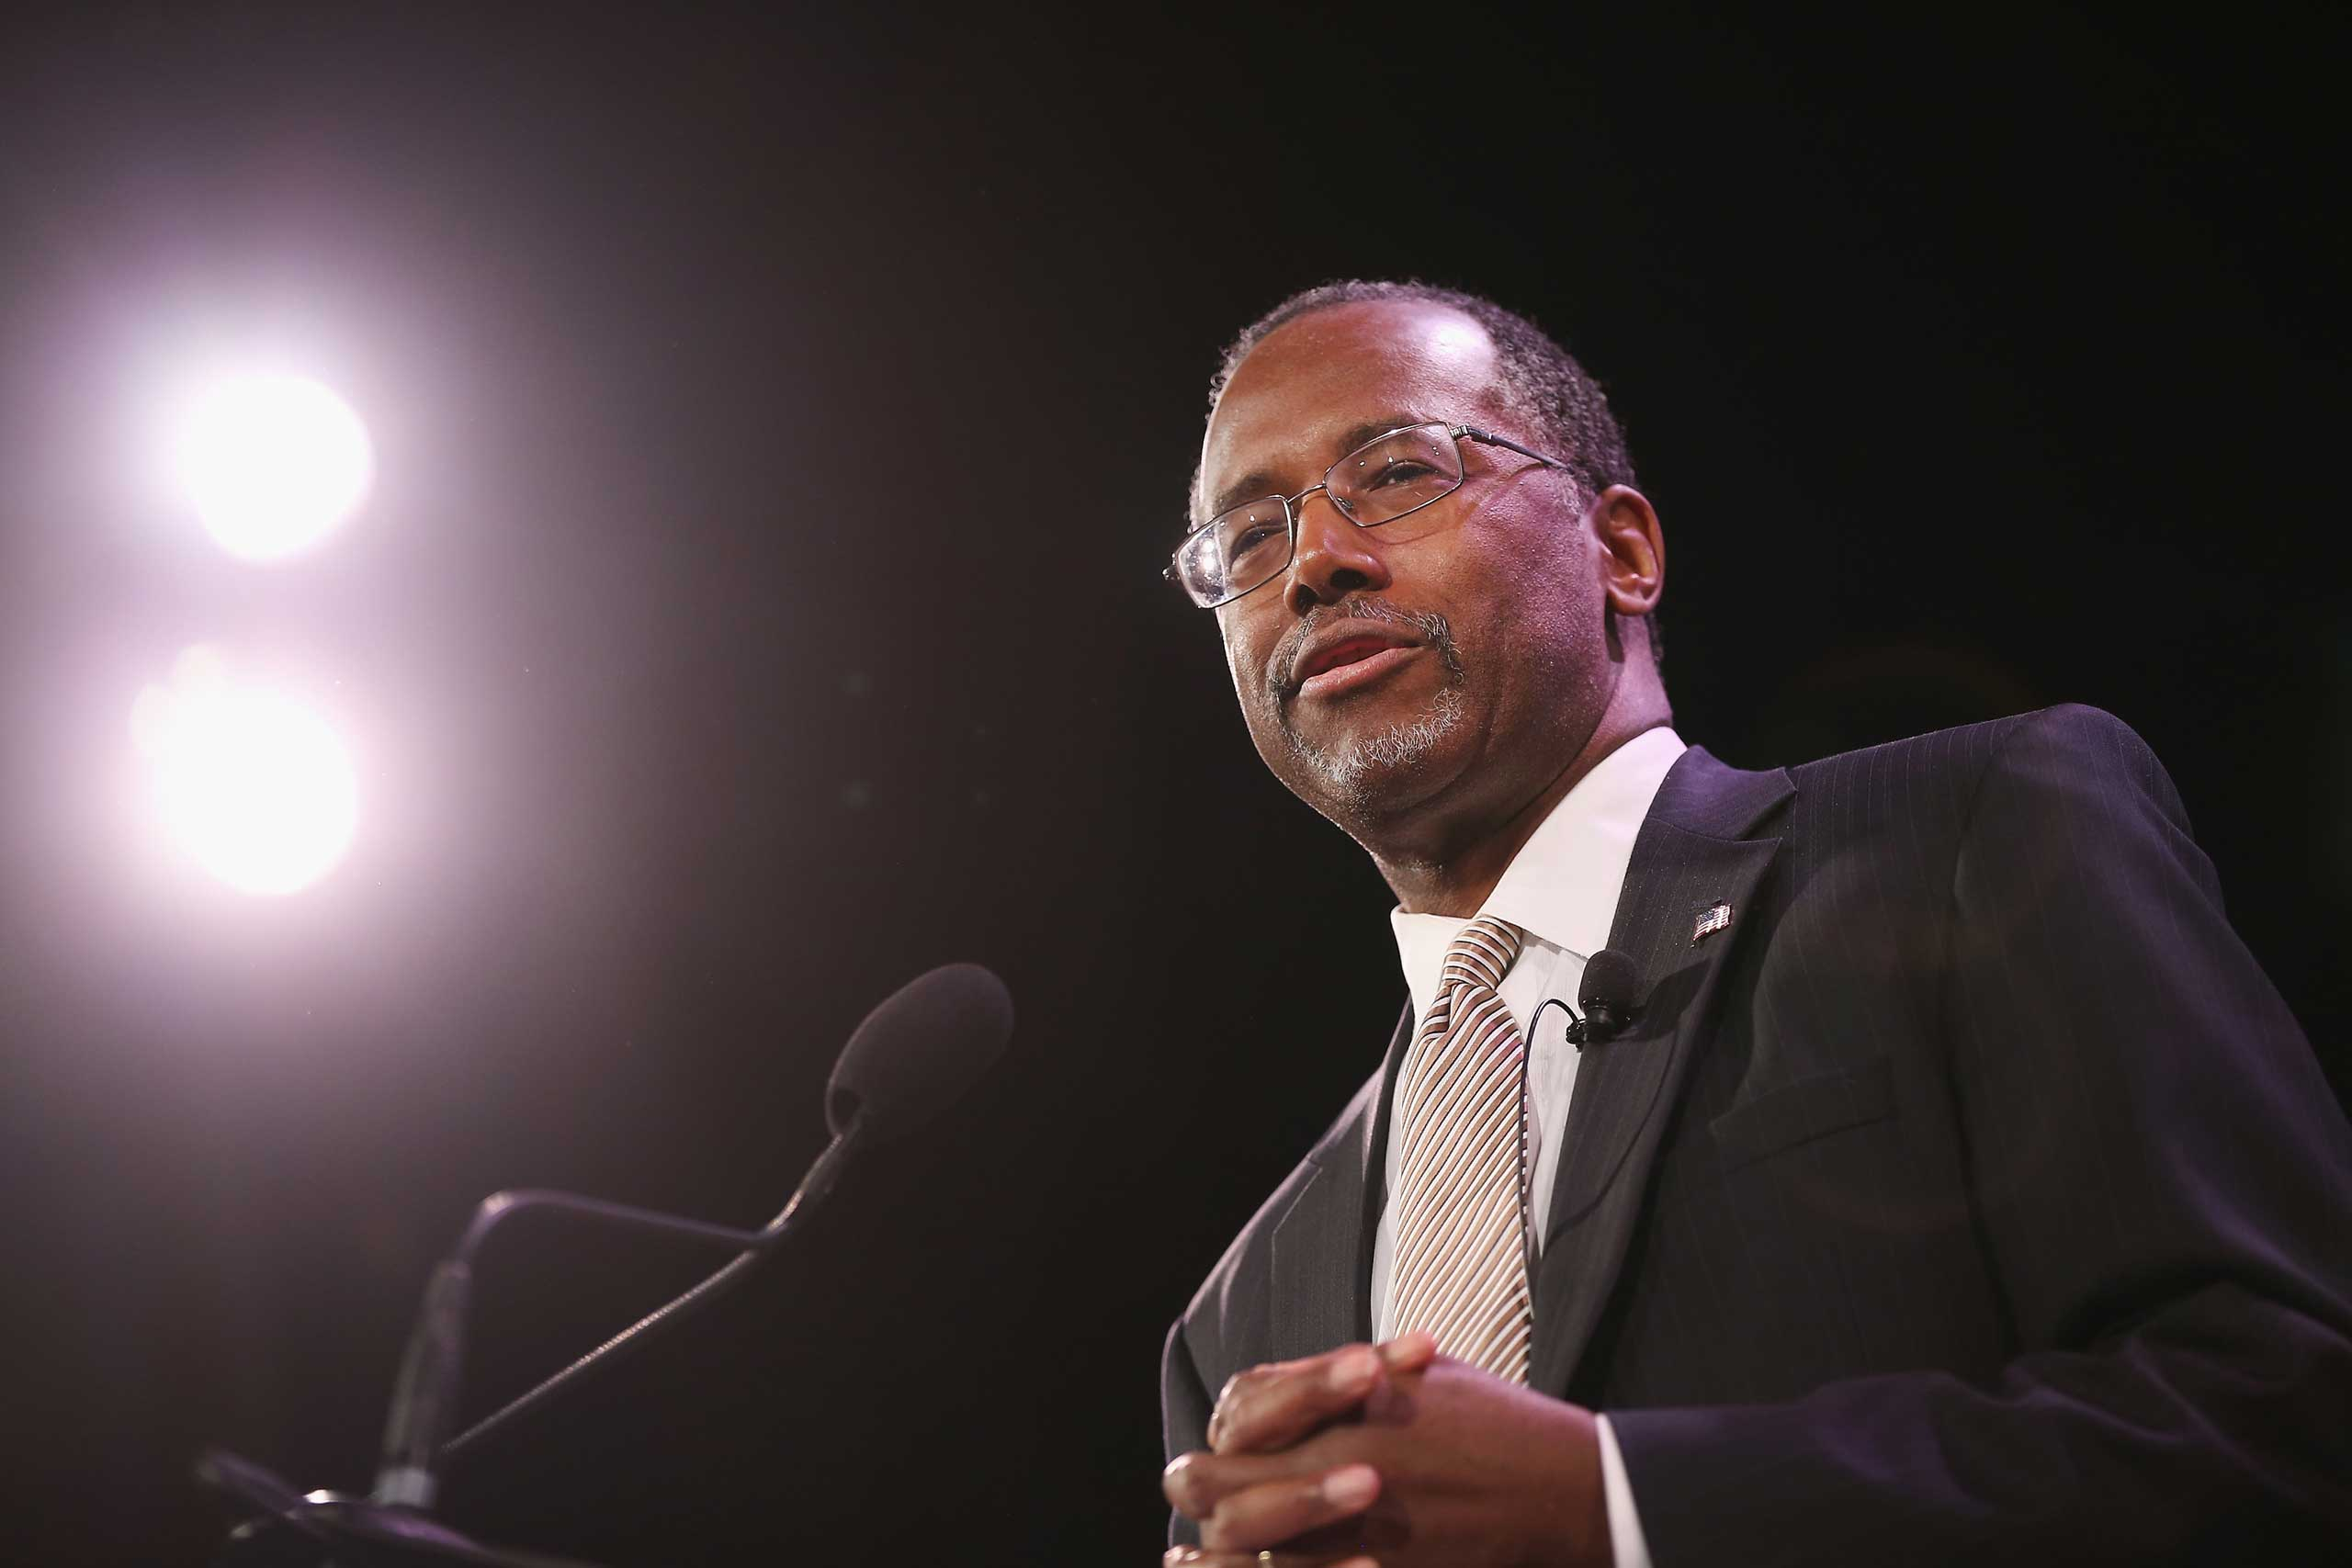 Dr. Ben Carson speaks to guests at the Iowa Freedom Summit on Jan. 24, 2015 in Des Moines, Iowa.